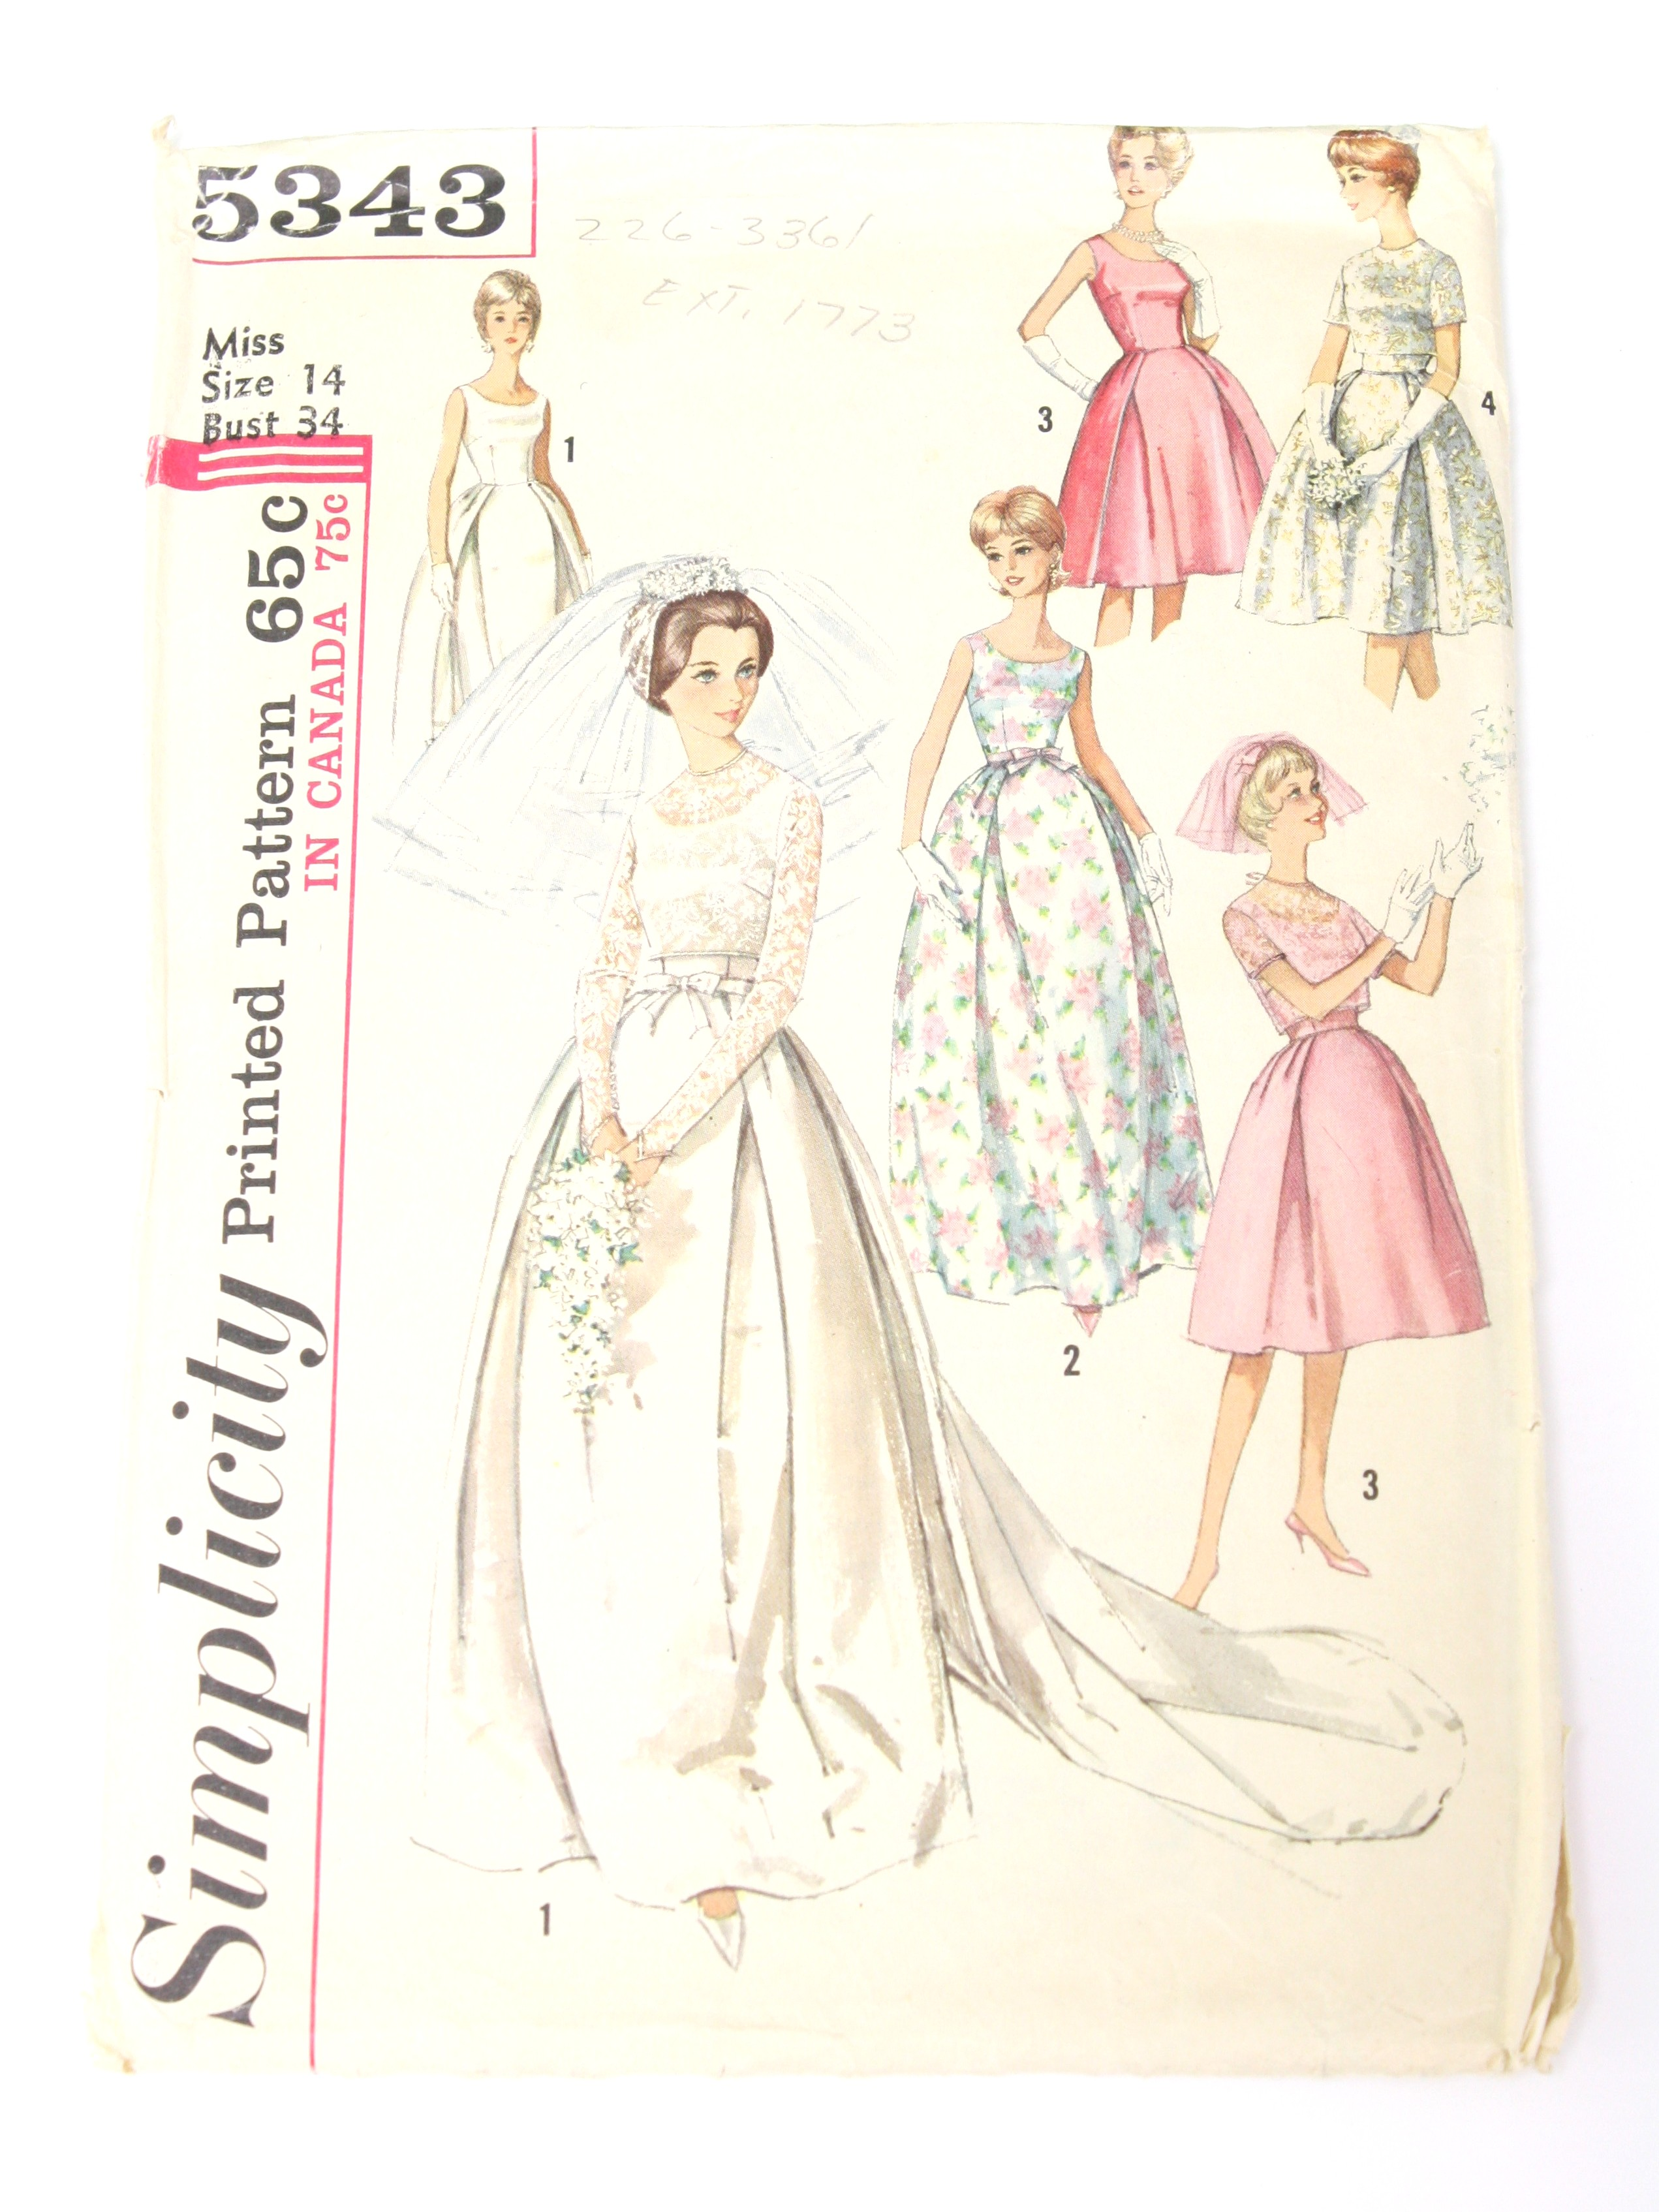 1960s Vintage Sewing Pattern: 60s -Simplicity Pattern No. 5343 ...